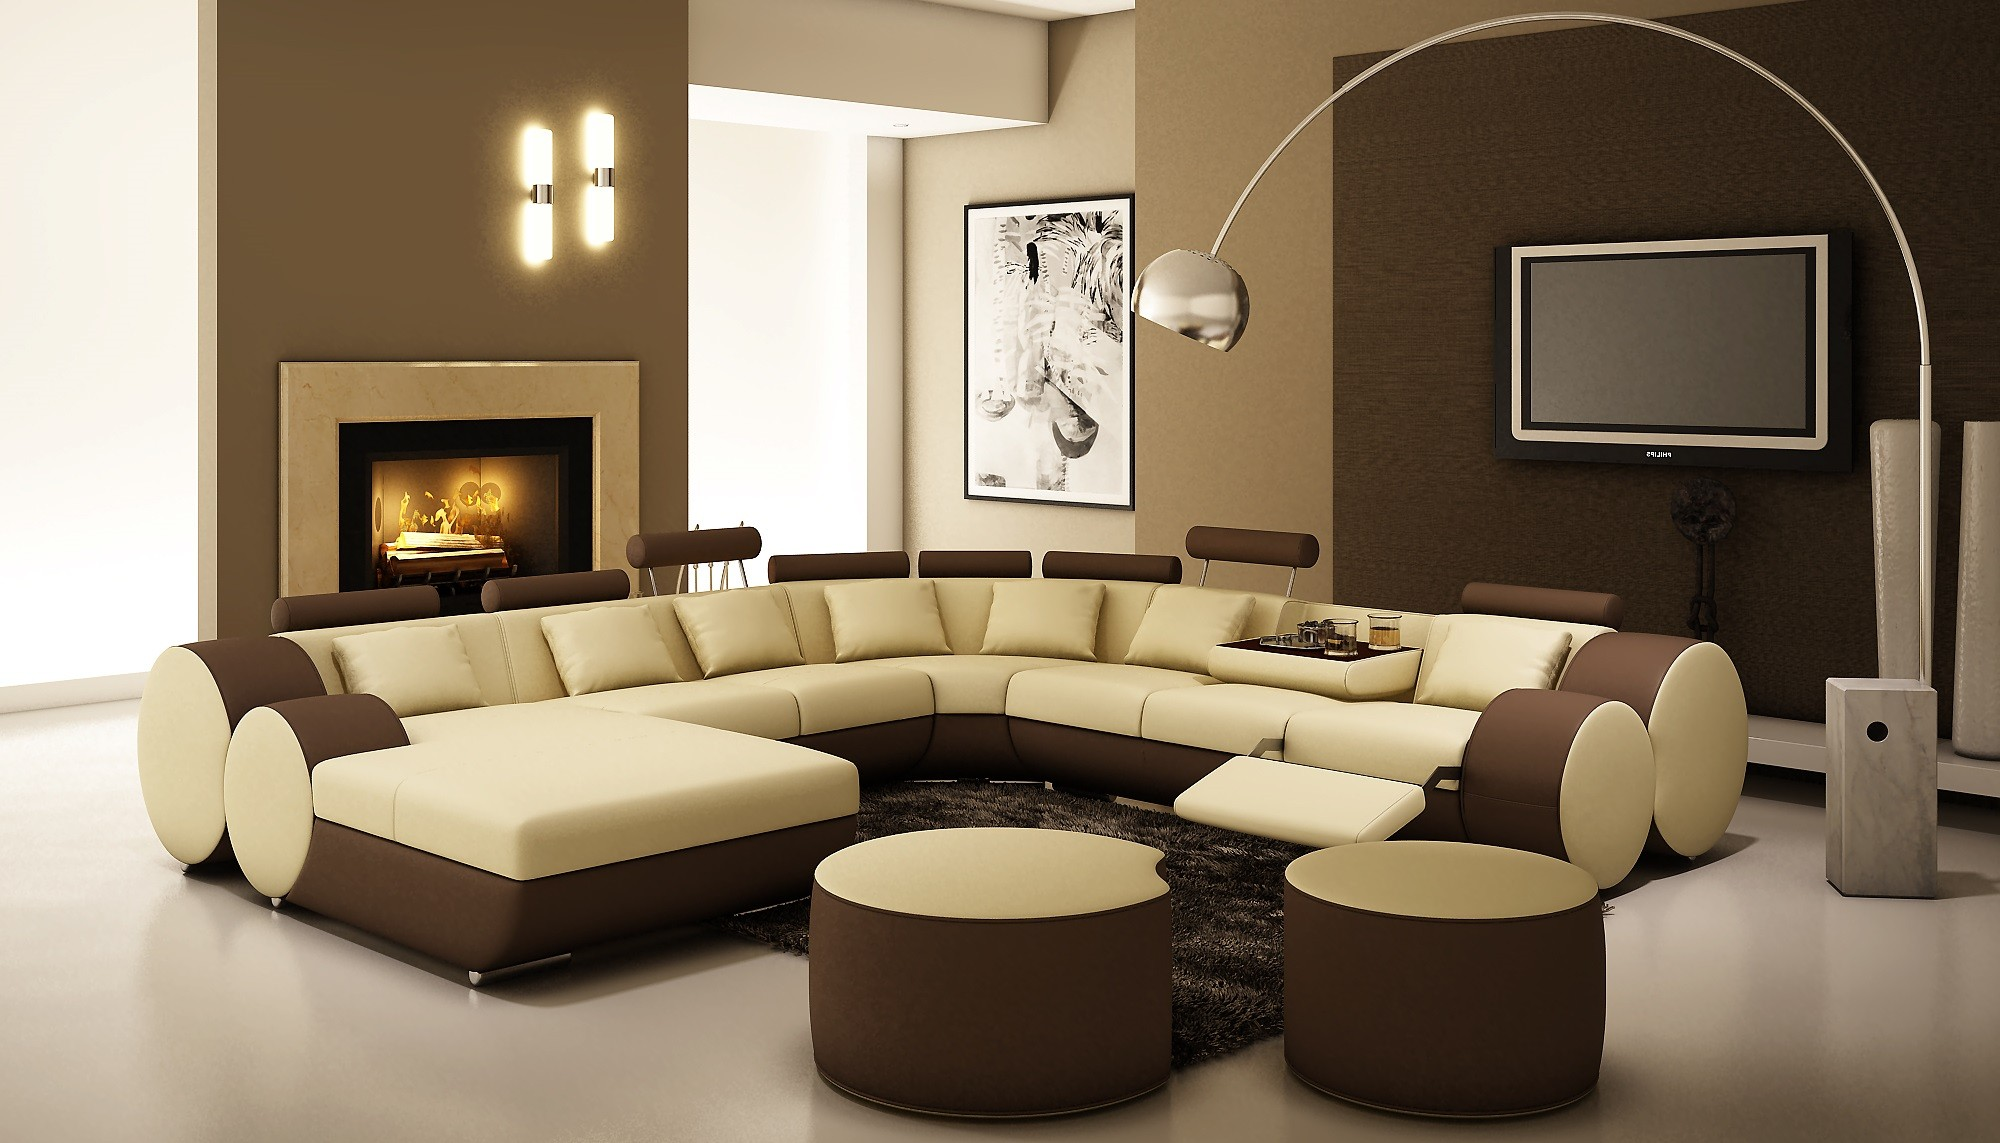 Unique sectional sofas homesfeed for Unique couches living room furniture